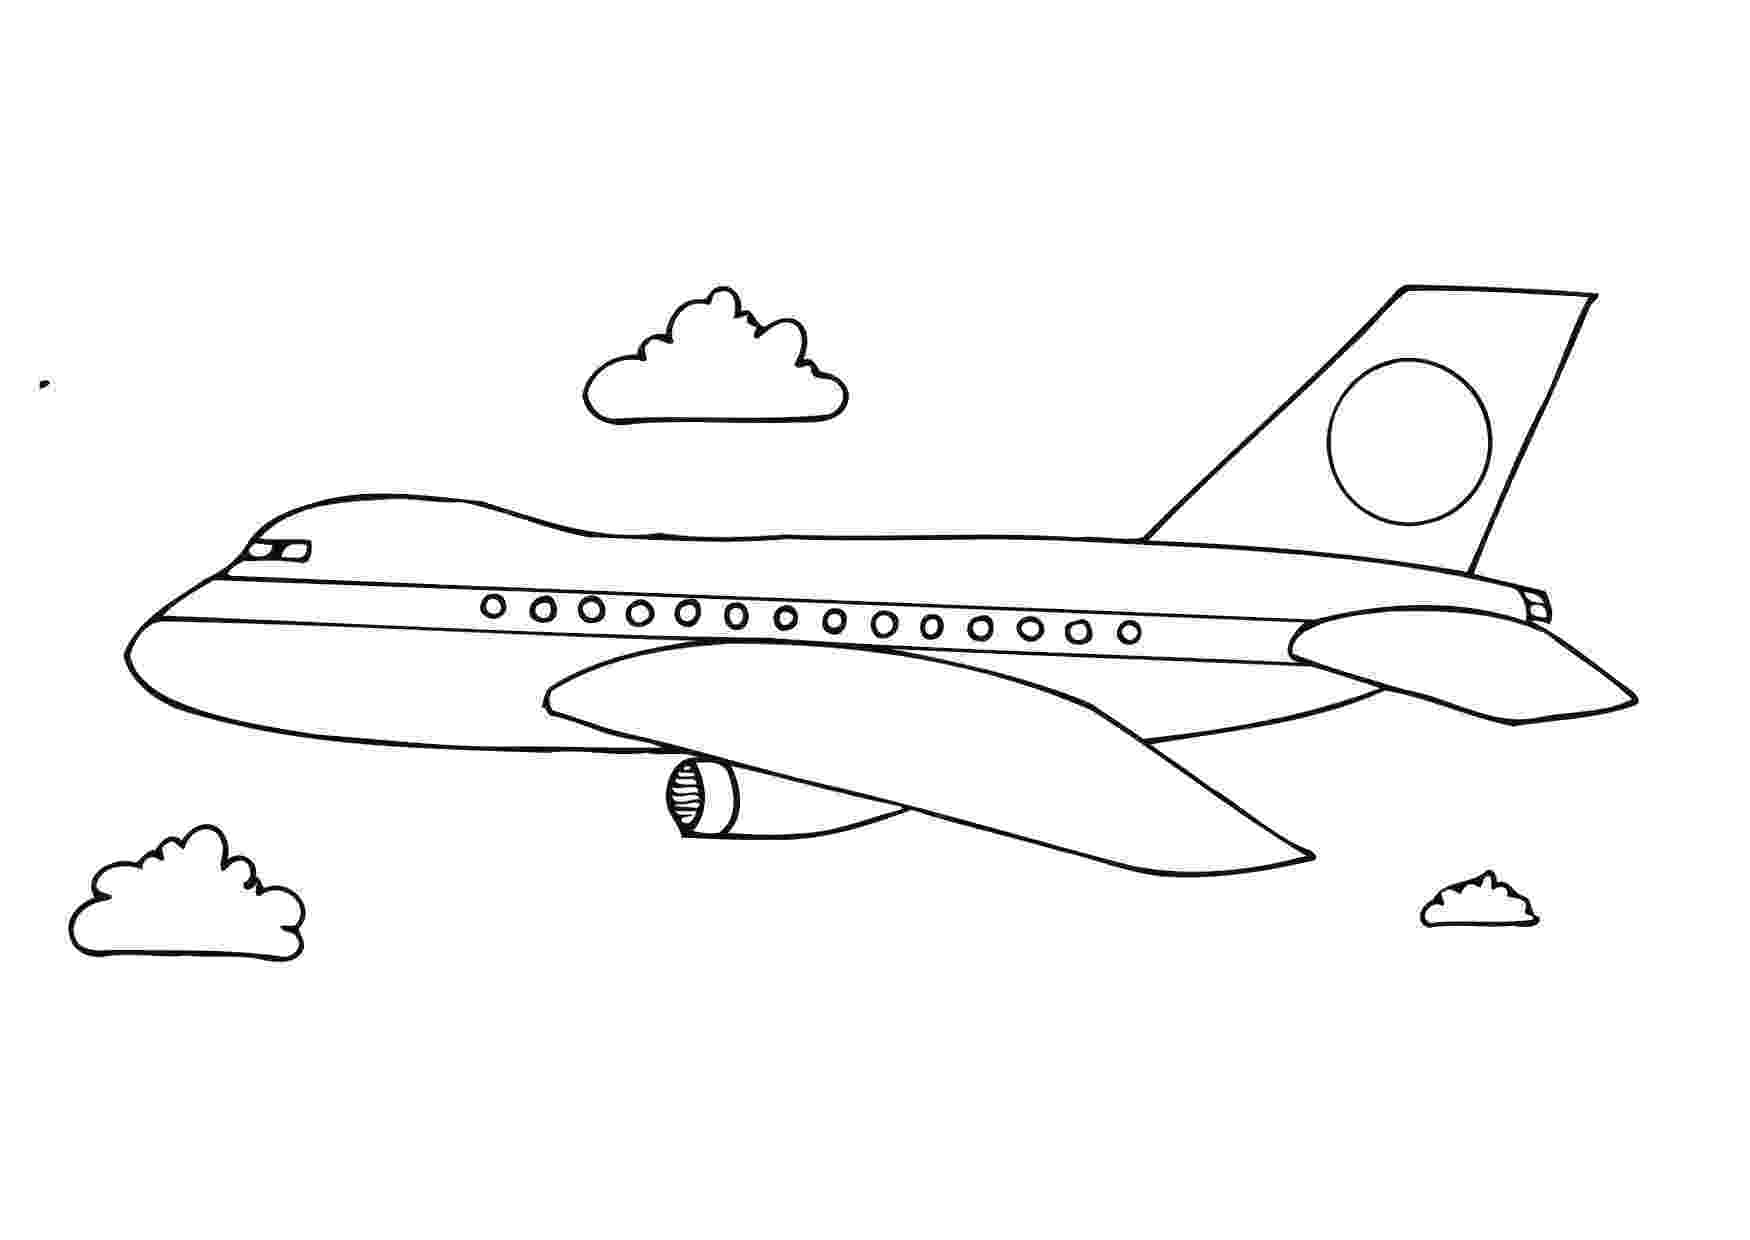 jet plane template plane outline free download on clipartmag template jet plane